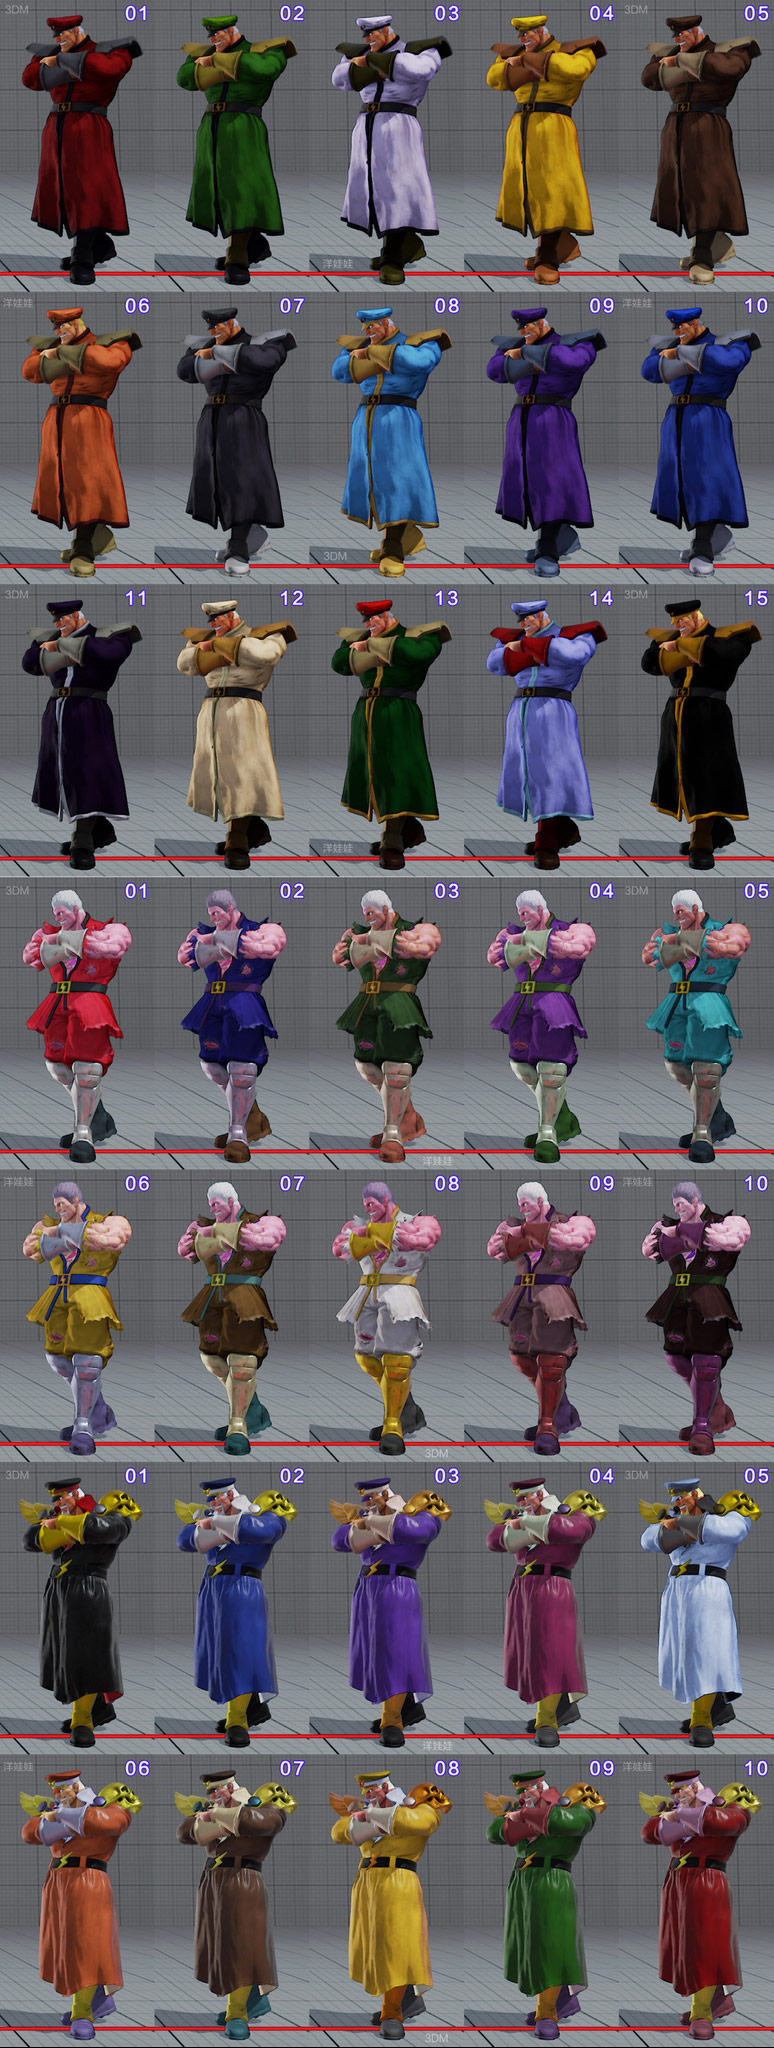 All colors for all current costumes in Street Fighter 5 15 out of 18 image gallery